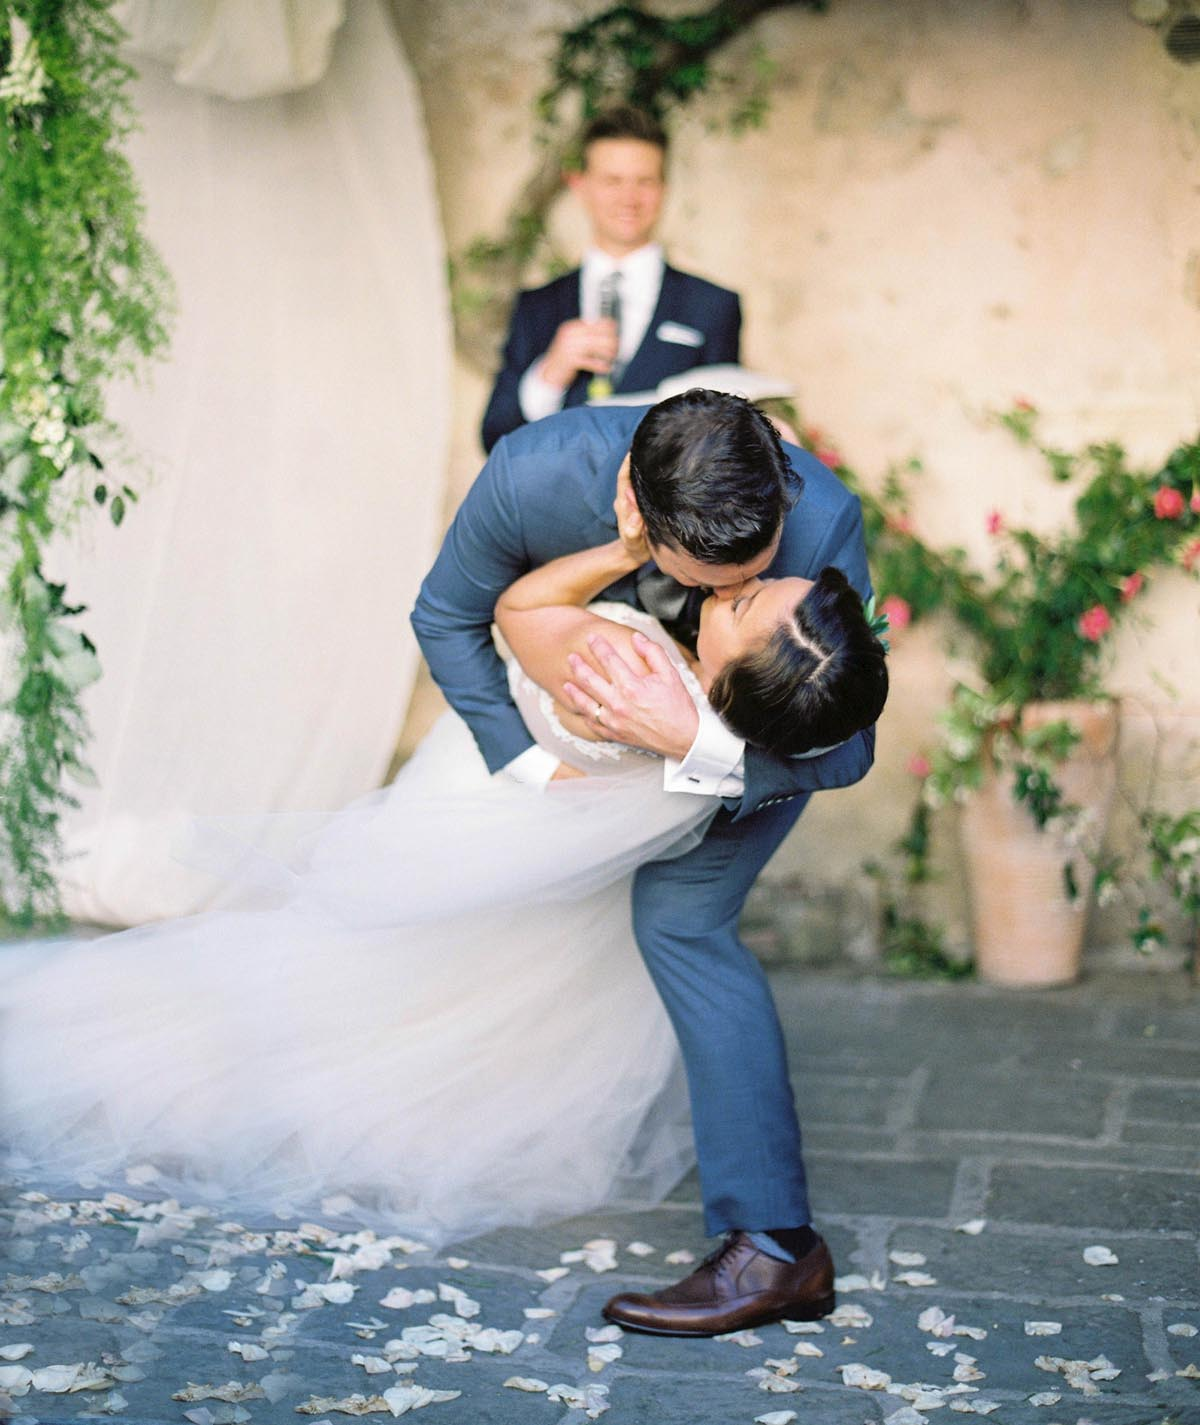 groom-dips-the-bride-after-the-ceremony-as-he-kisses-the-bride